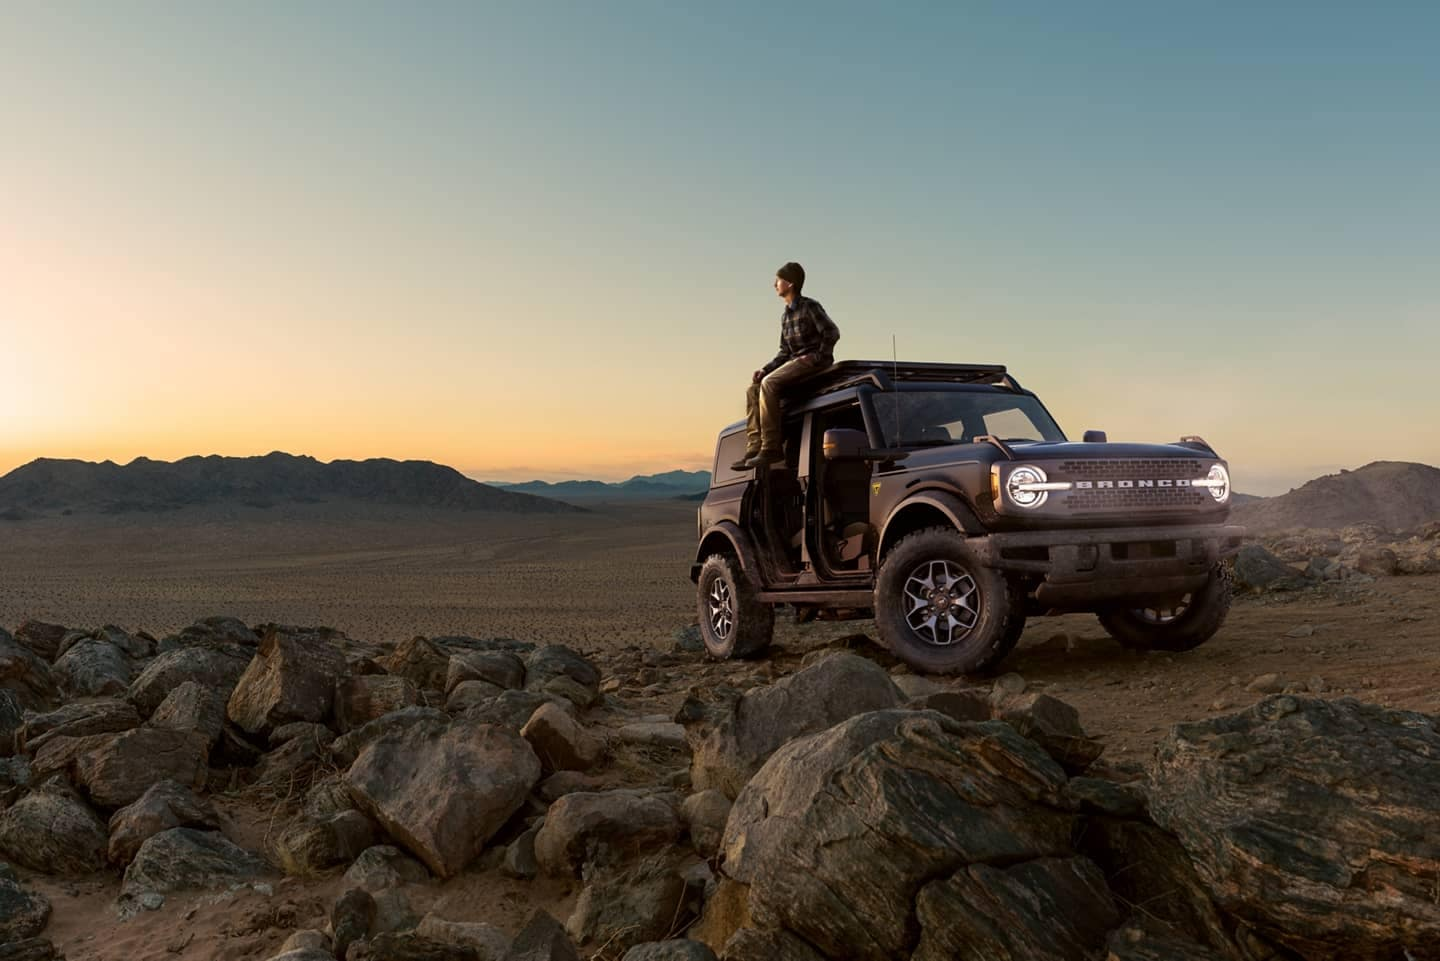 bronco and person in the desert